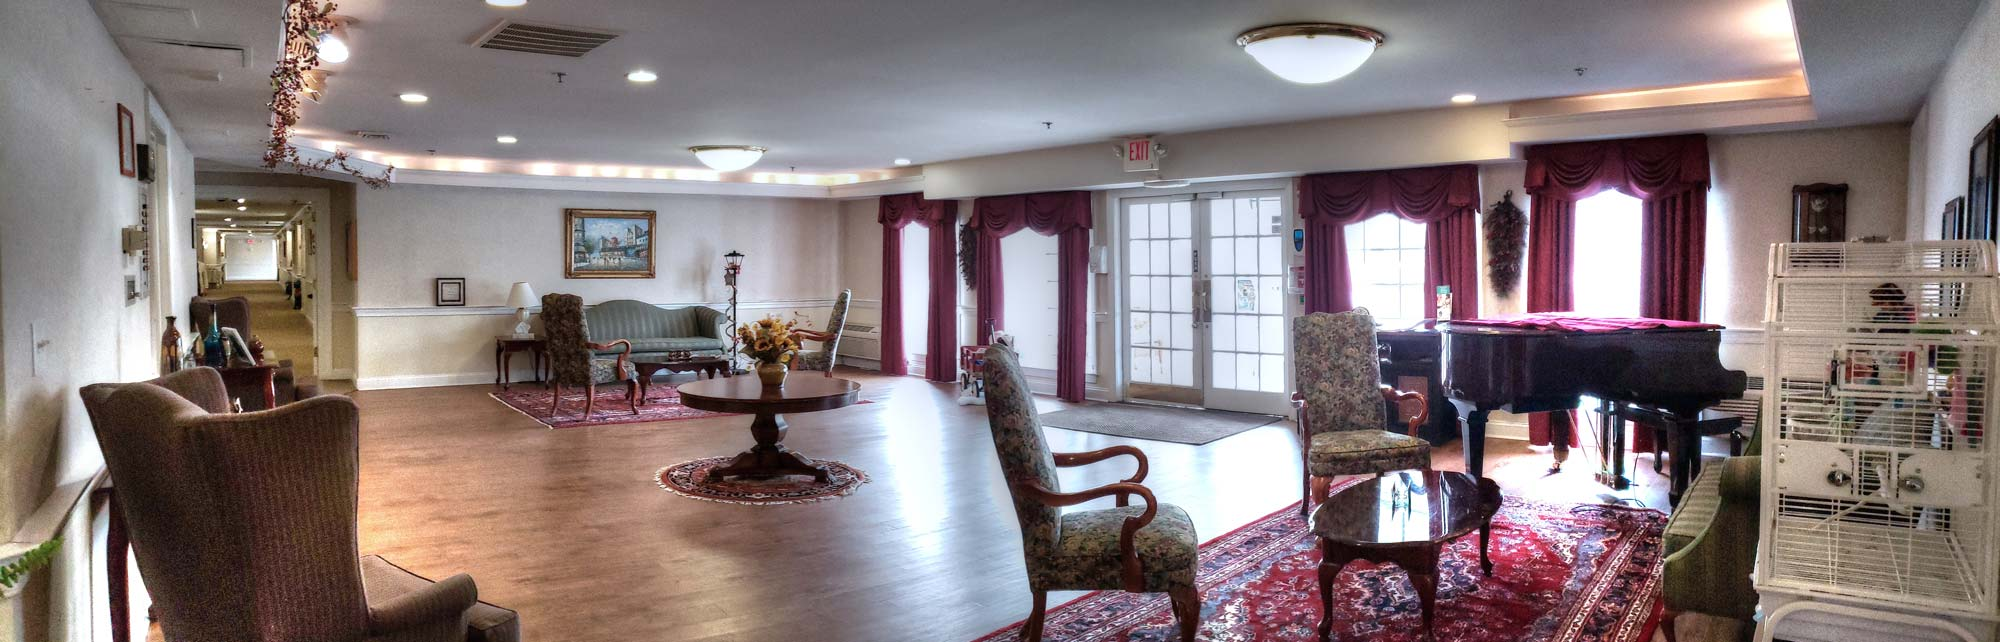 Panoramic view of the lobby.